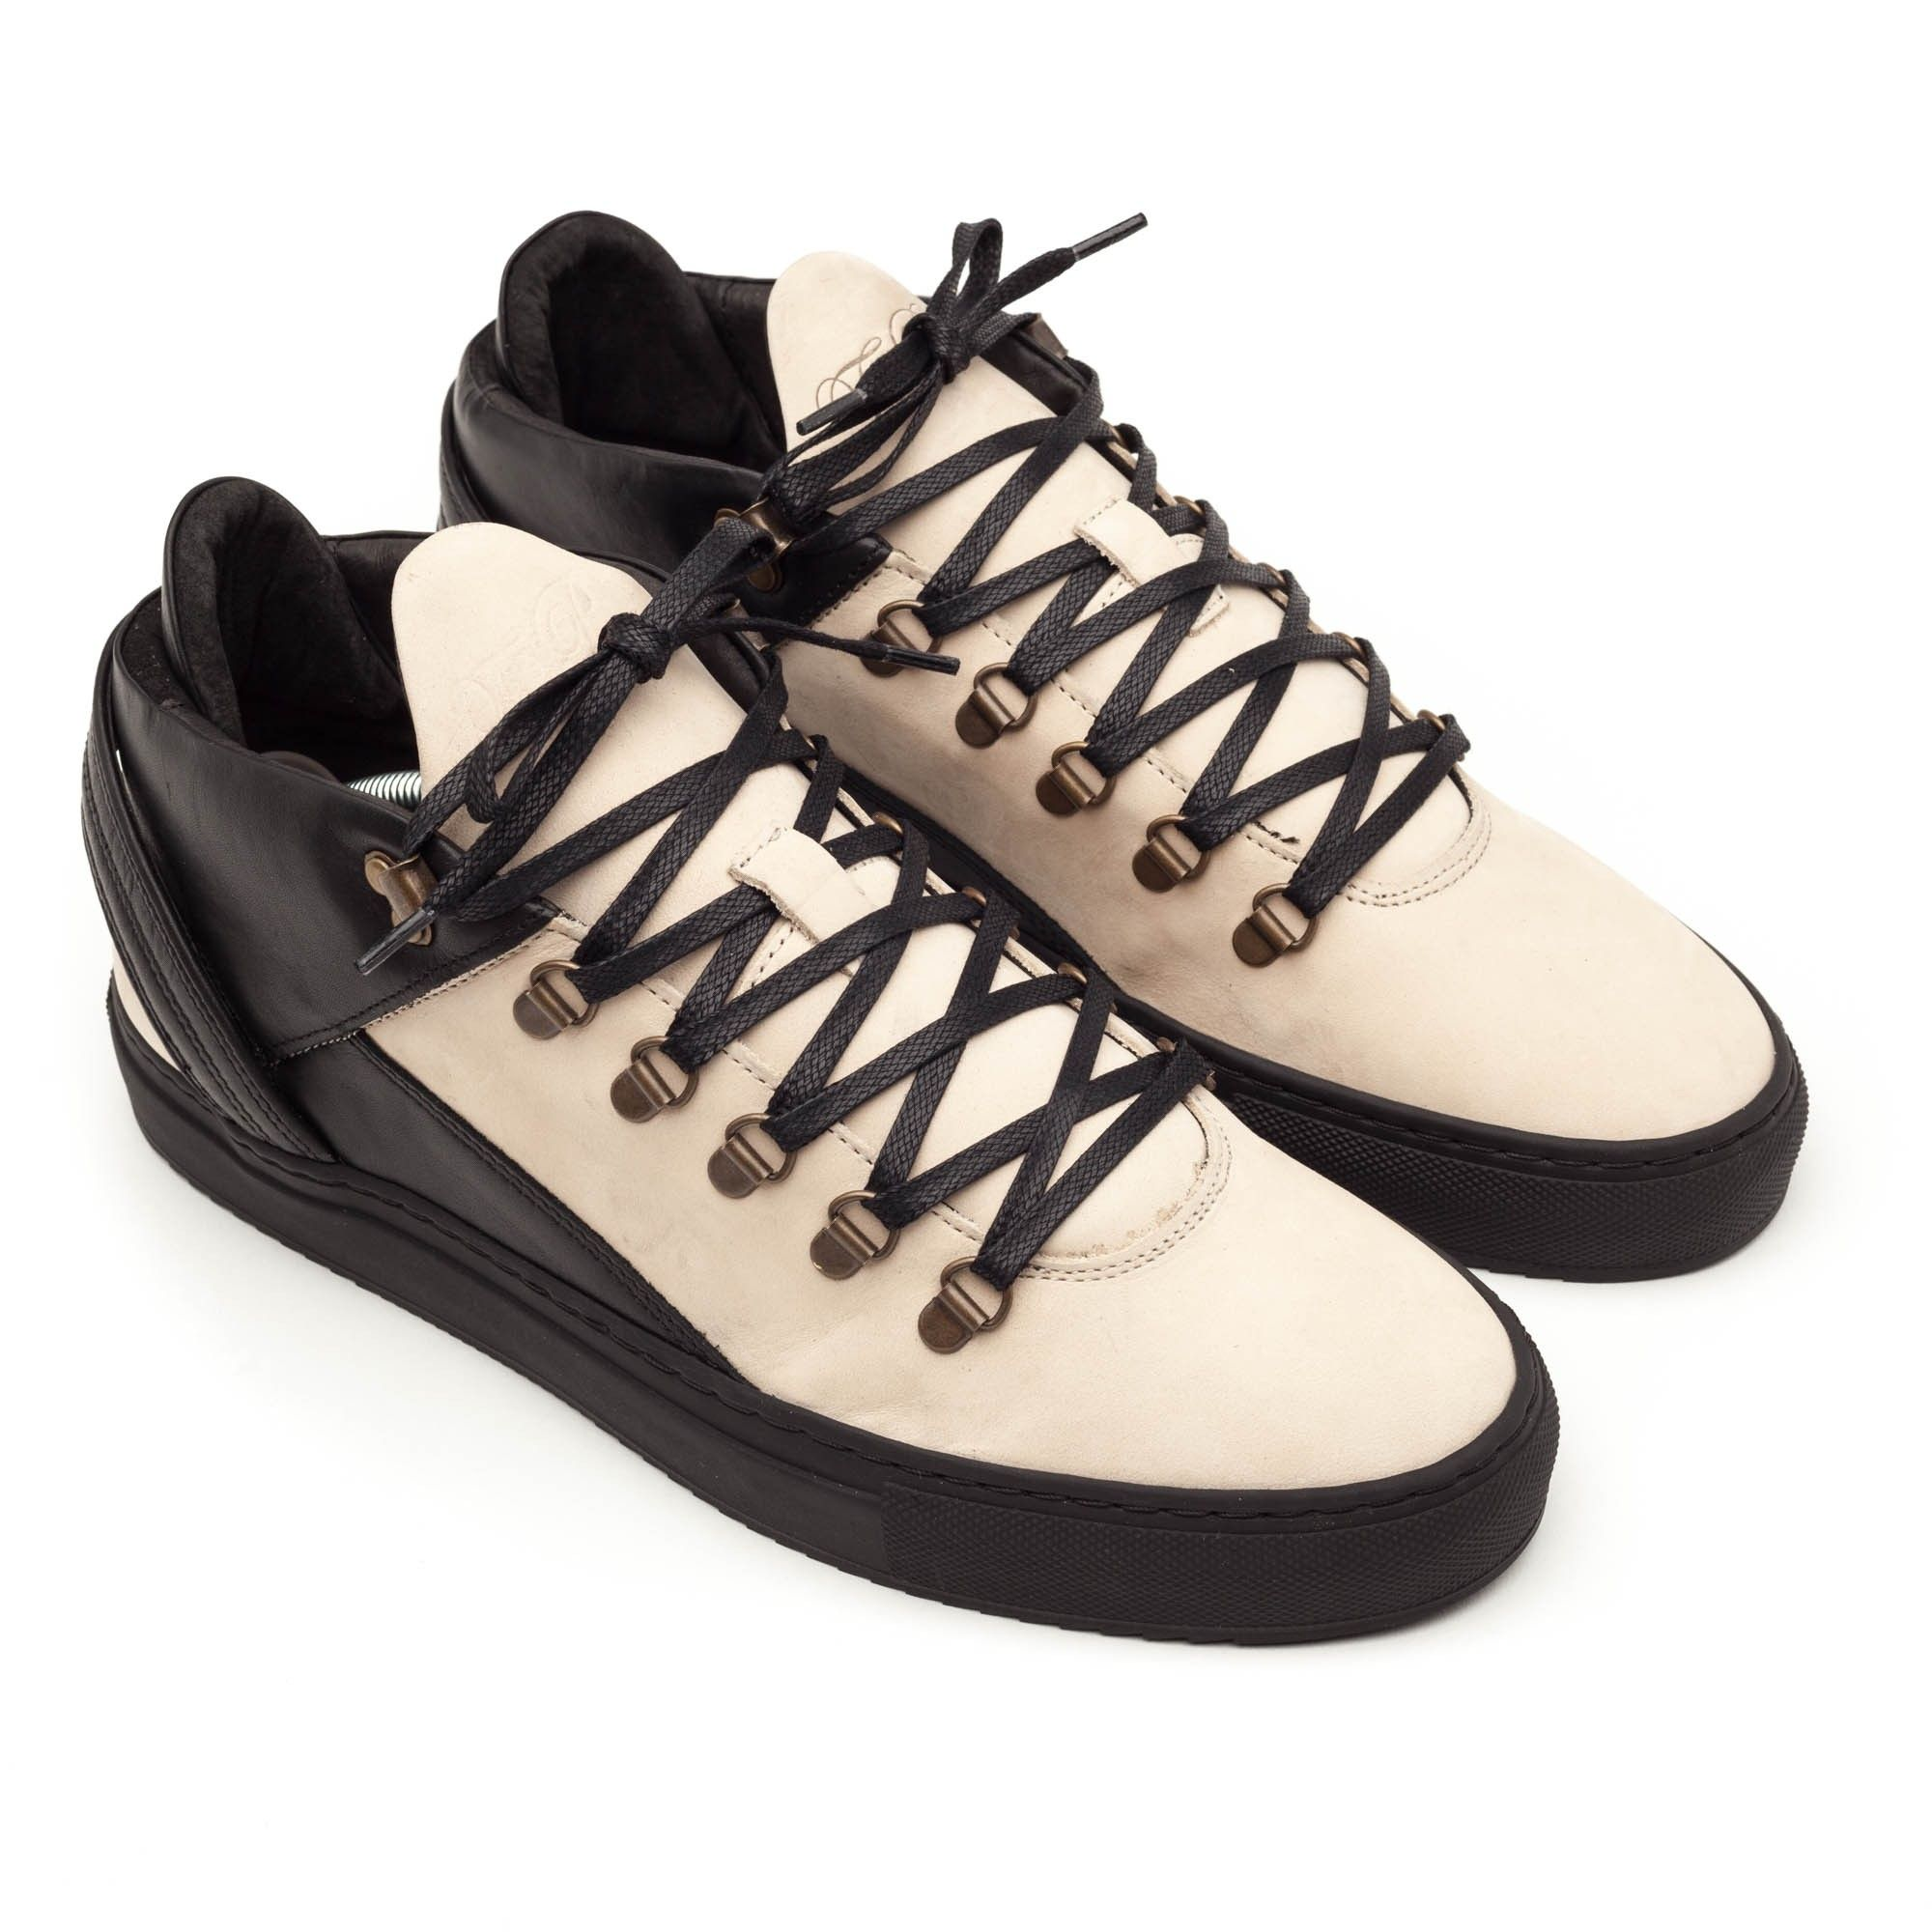 All Models Mid Mountain Transformed Frost Filling Pieces Golden Goose Sneaker Model Sneakers